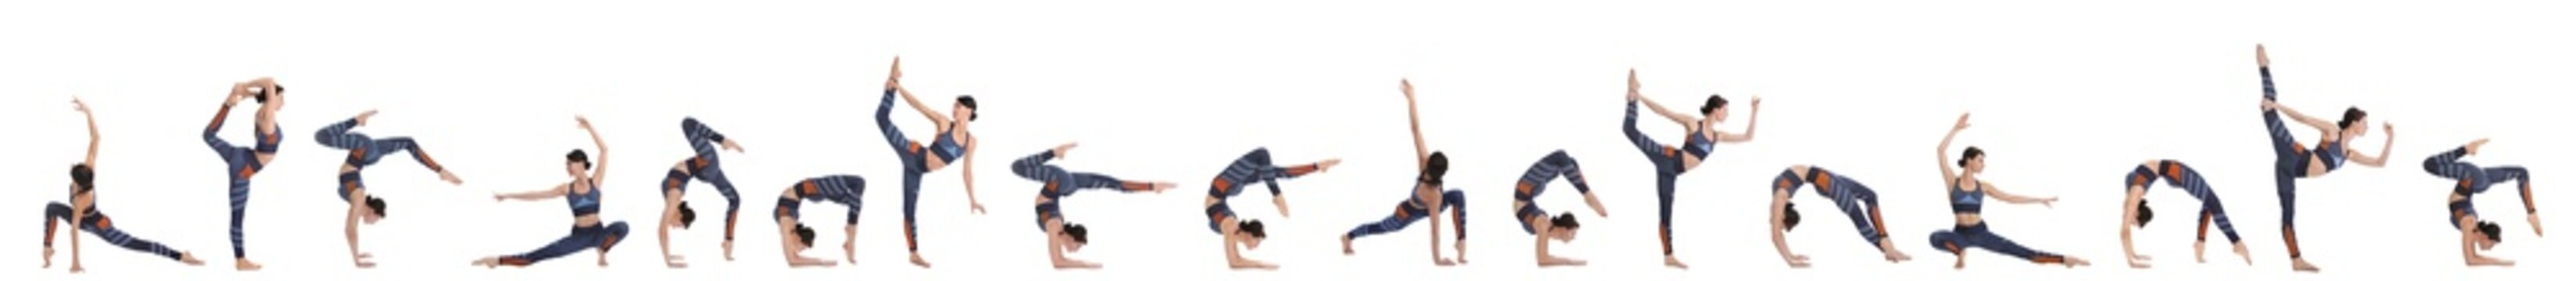 Collage of professional young acrobat exercising on white background. Banner design